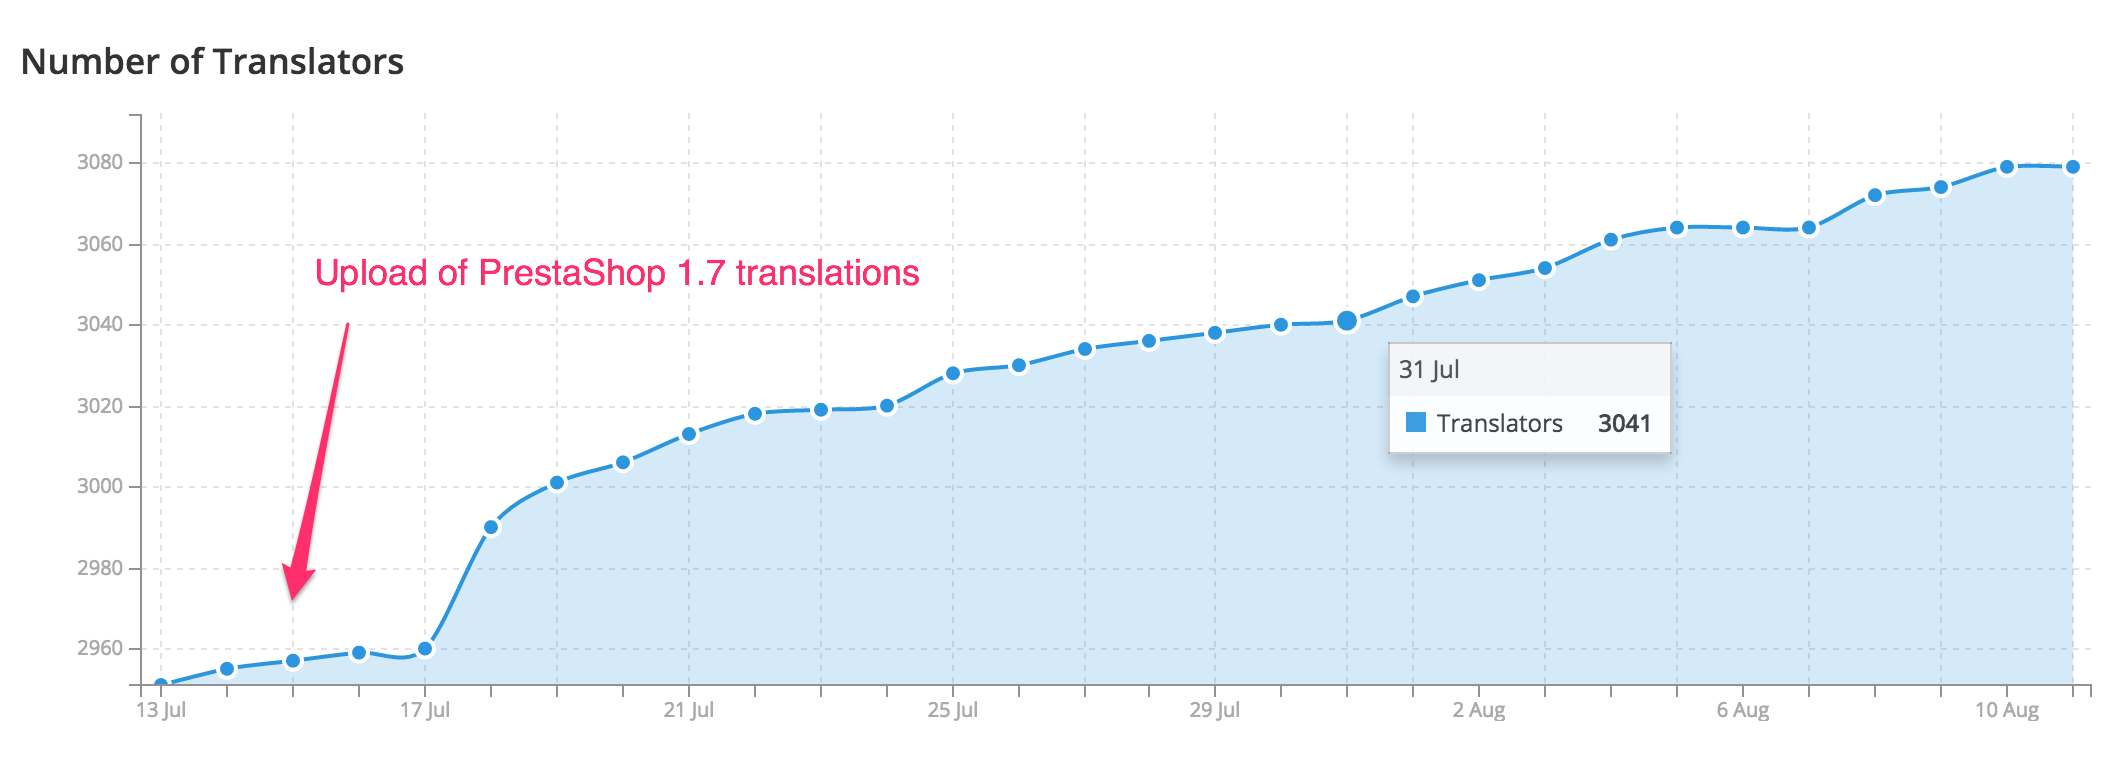 July 2016 number of translators